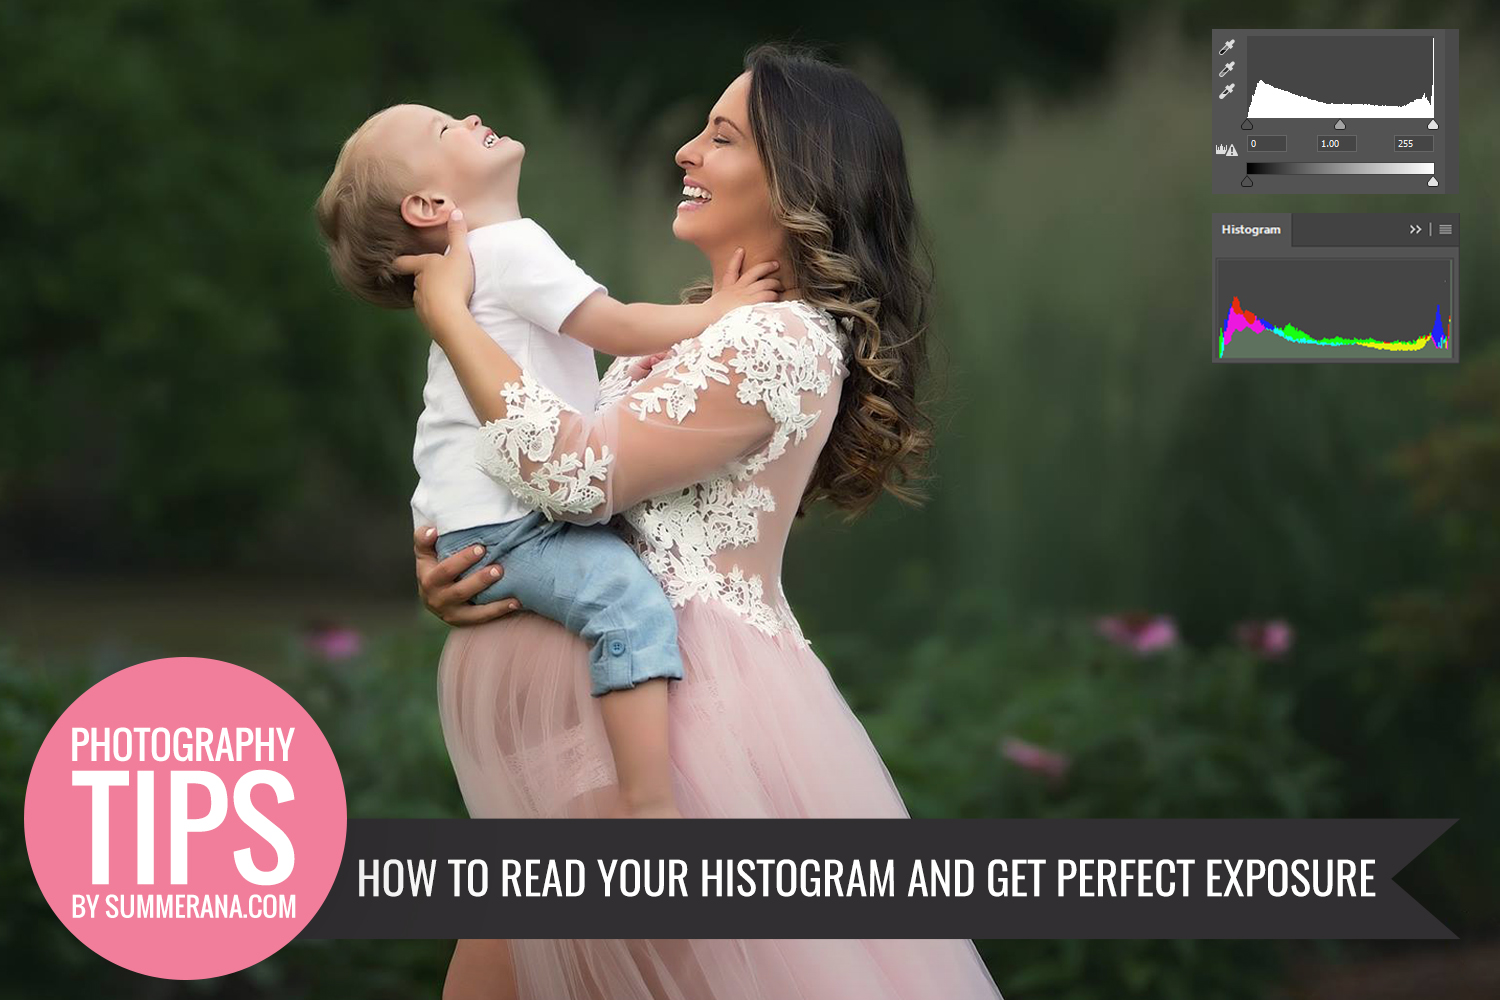 How-to-Read-Your-Histogram-and-Get-Perfect-Exposure